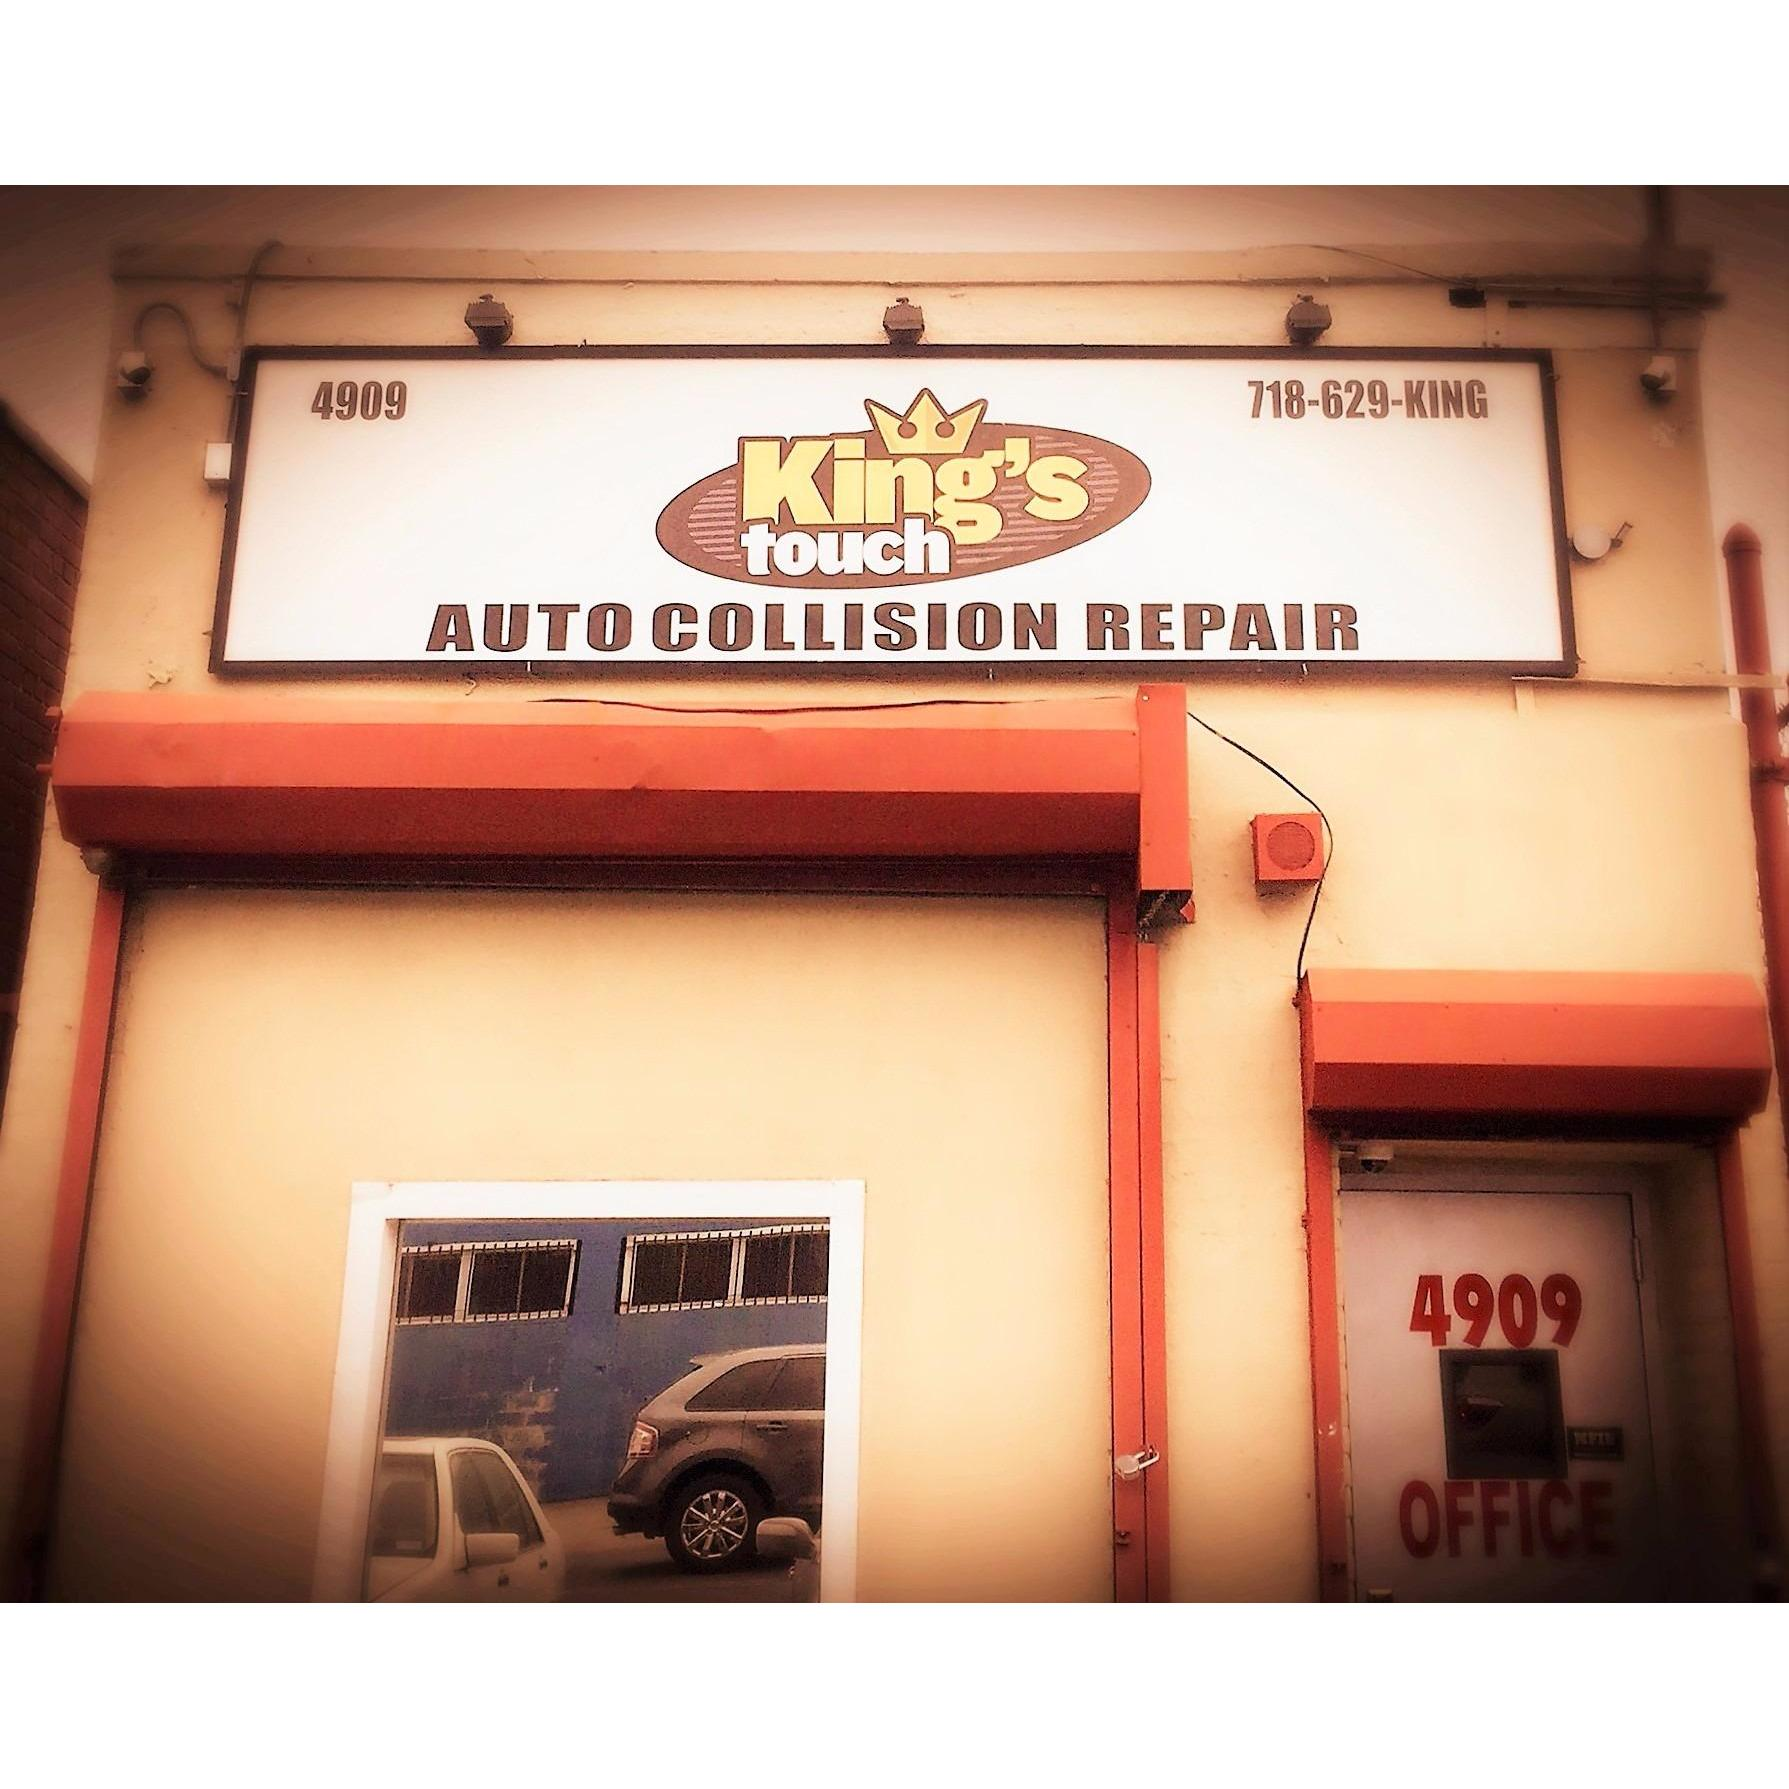 King's Touch Auto Collision Repair